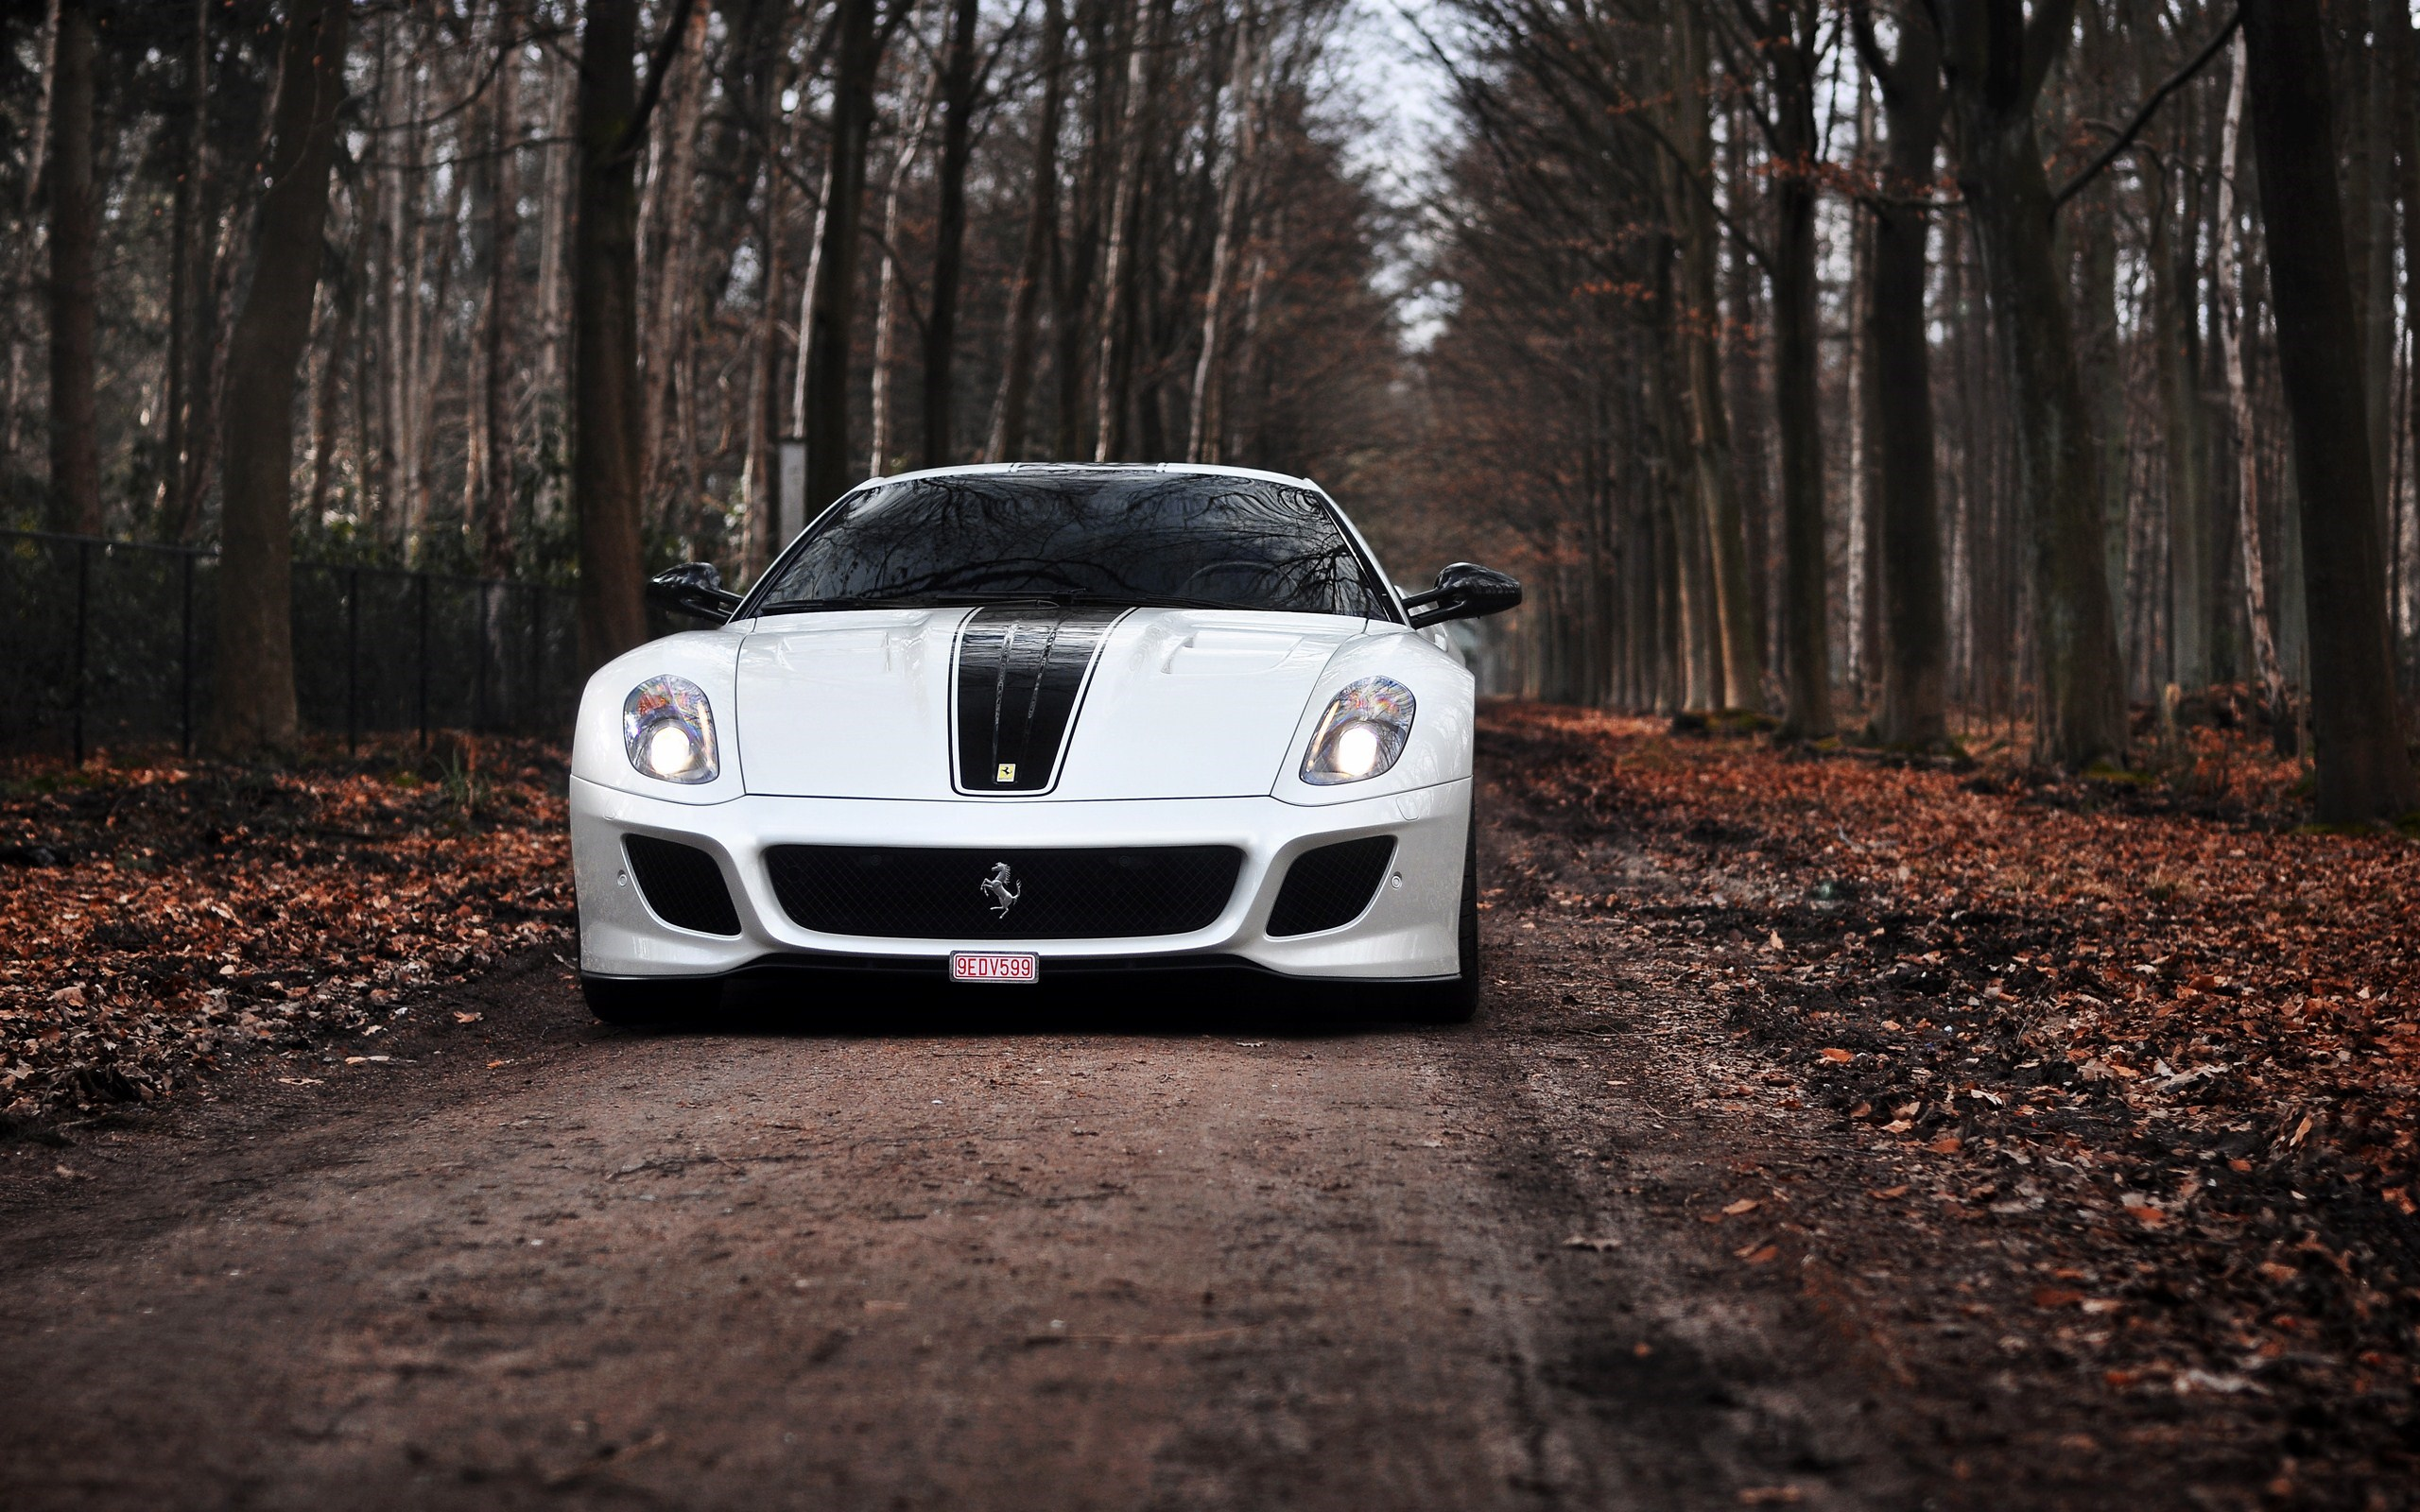 stunning white ferrari wallpaper 36131